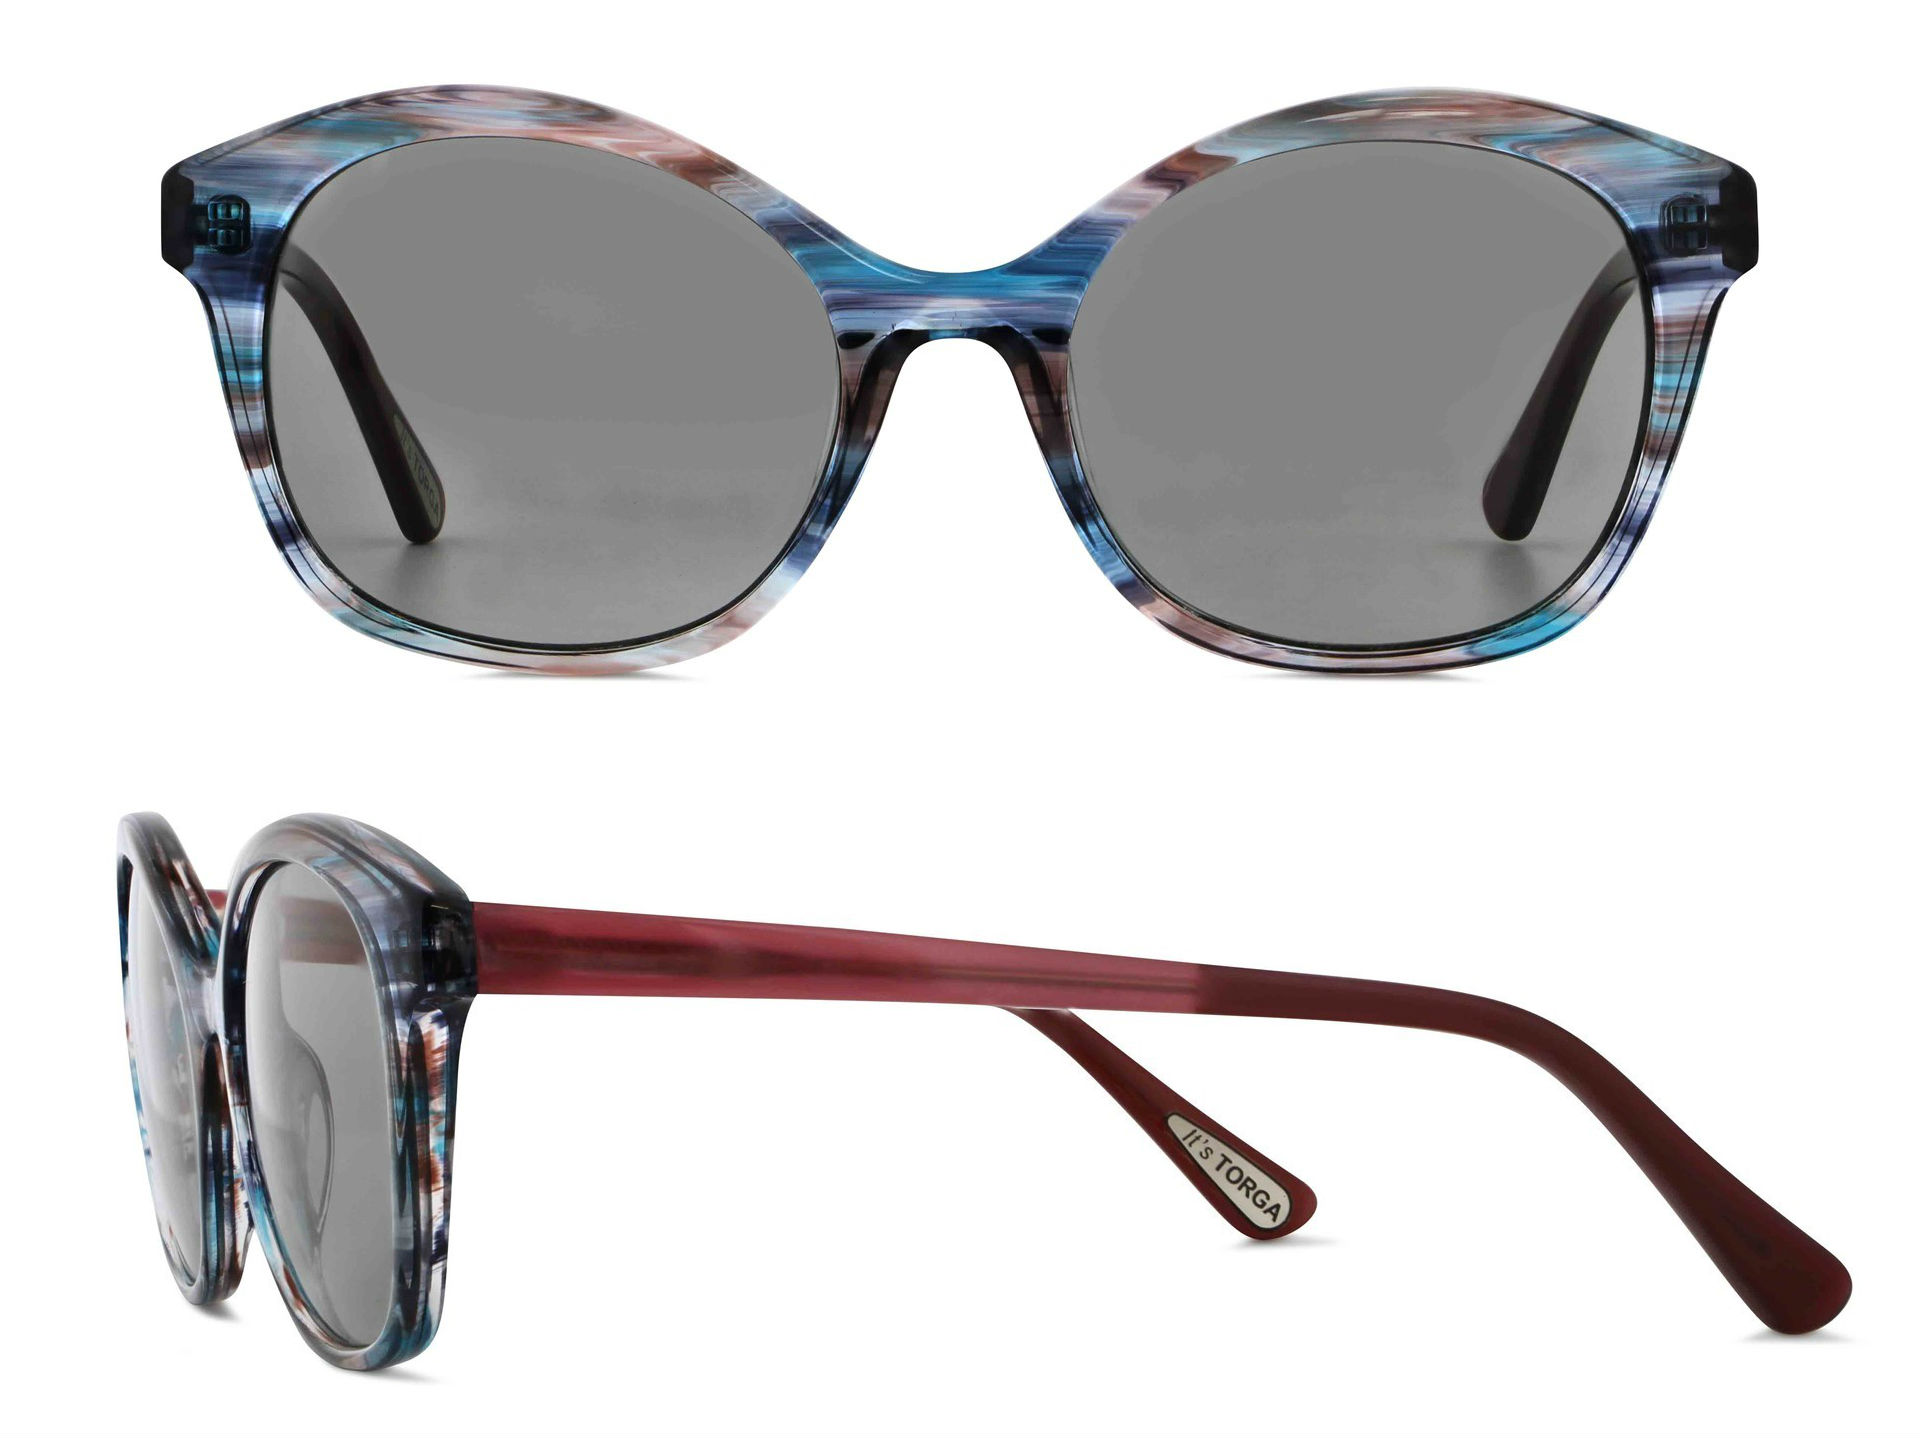 455c7608a45e The eyewear landscape is embracing big, bold, and beautiful this season,  and nothing screams that more than the Femina 5053 frames. Coming in brown,  pink, ...